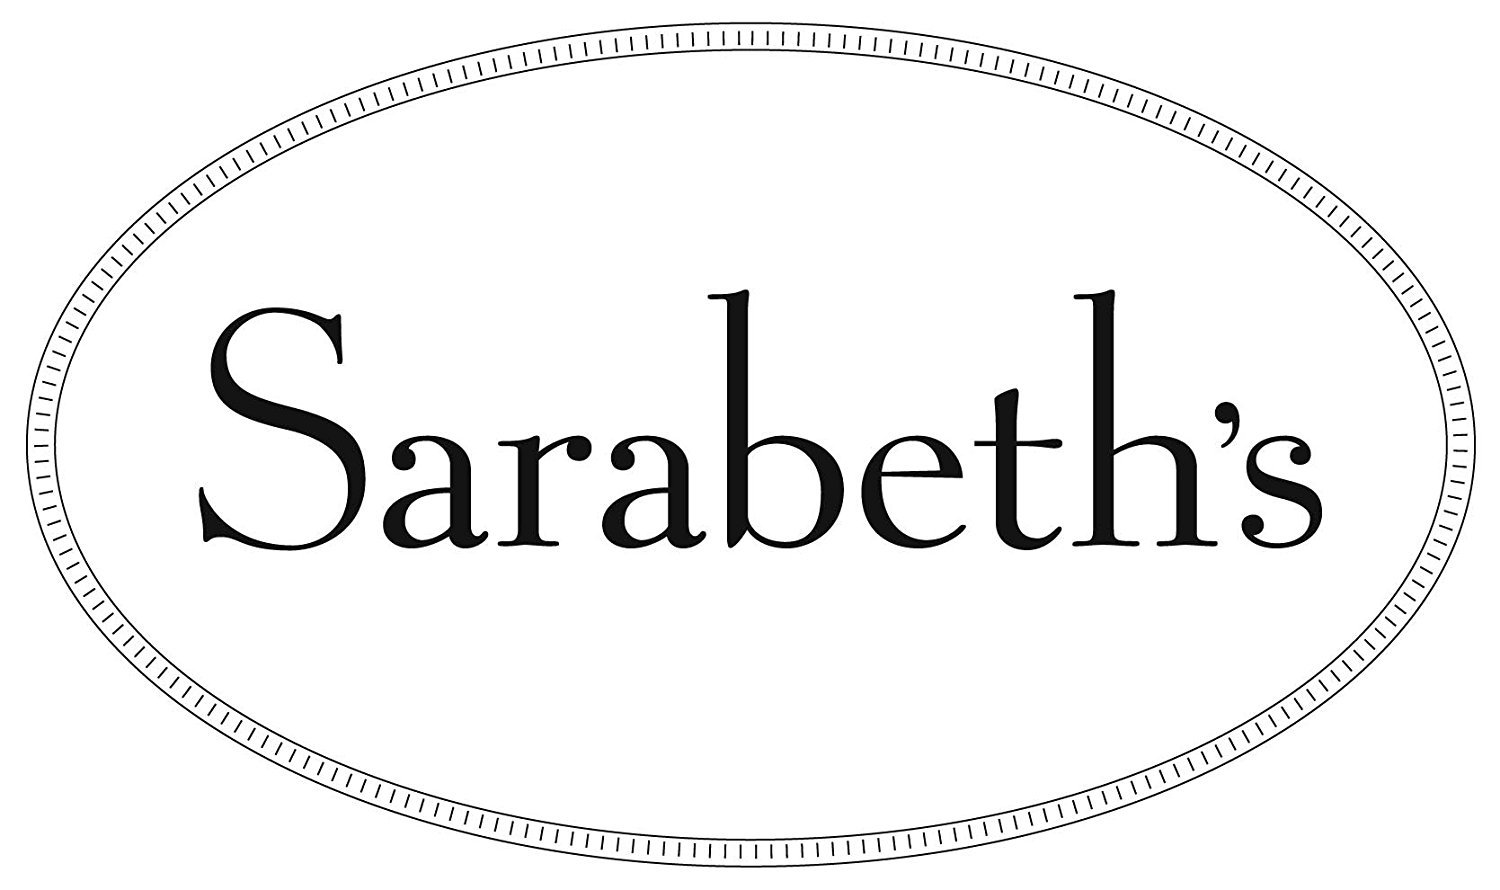 Sarabeth's Signature Collection 6 Piece Gift Box Set - Jams, Pancake Mix, Hot Chocoloate, and Syrup - Pack of 2 by Sarabeth's